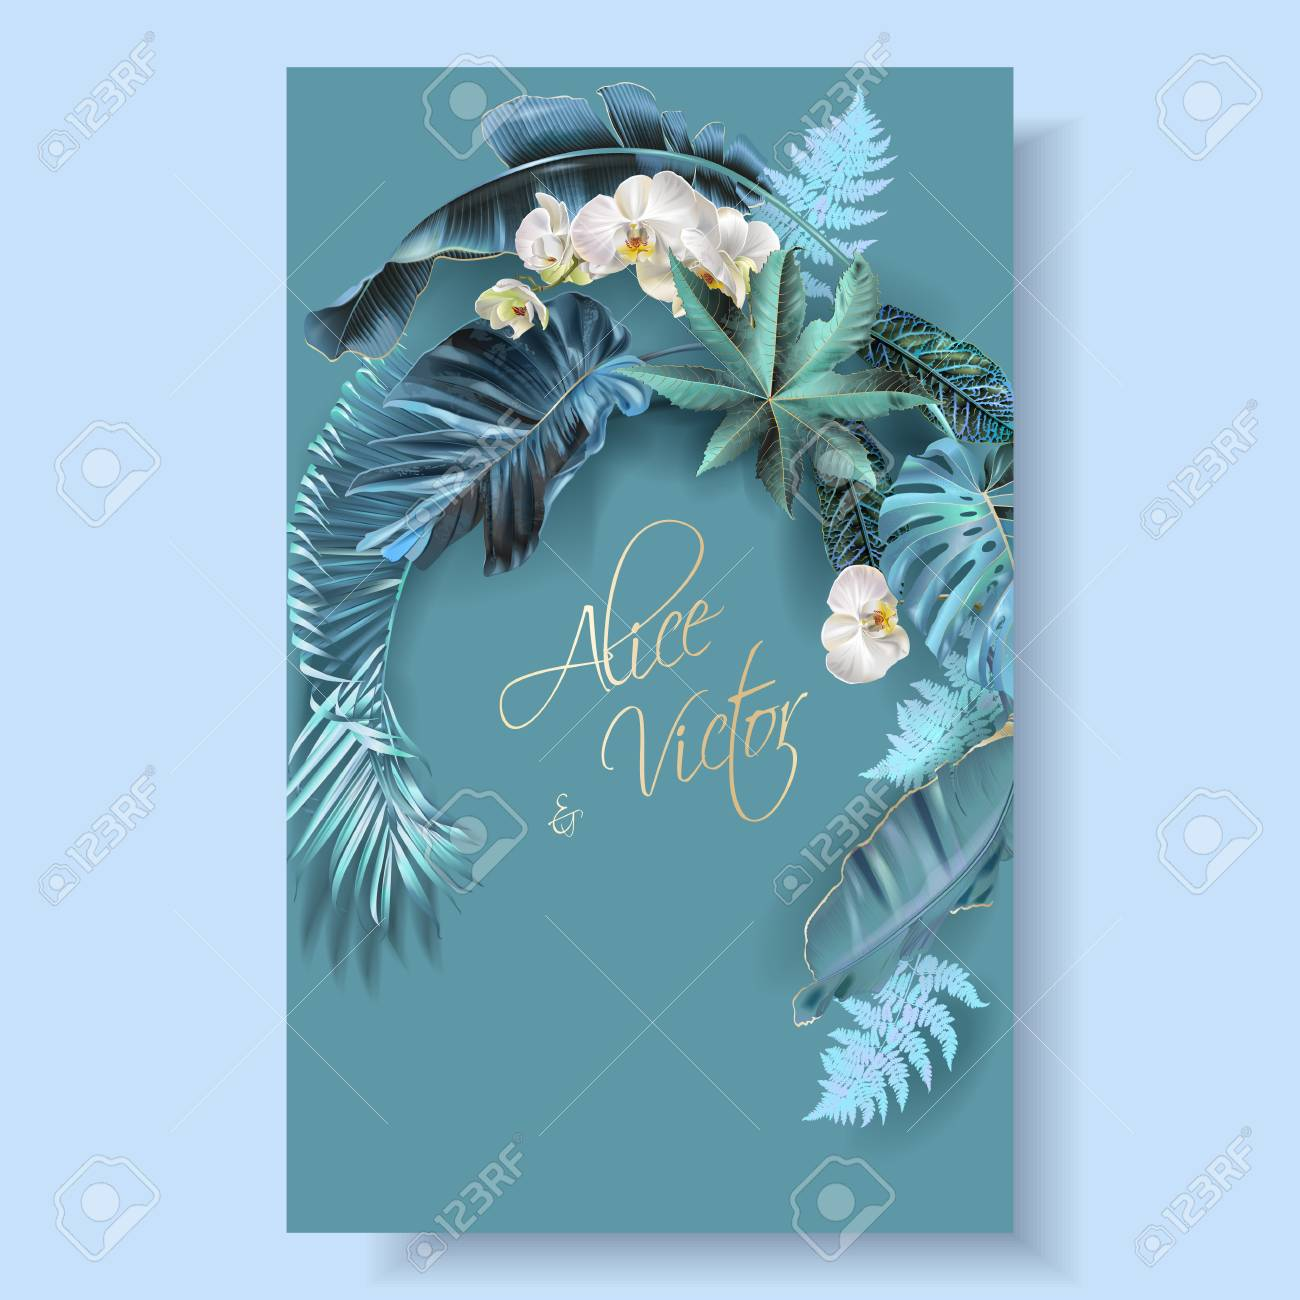 Vector vertical wedding invitation card with blue, turquoise, purple tropical leaves and orchid flowers. Fantastic botany design for wedding ceremony. Can be used for cosmetics, beauty salon - 127672806